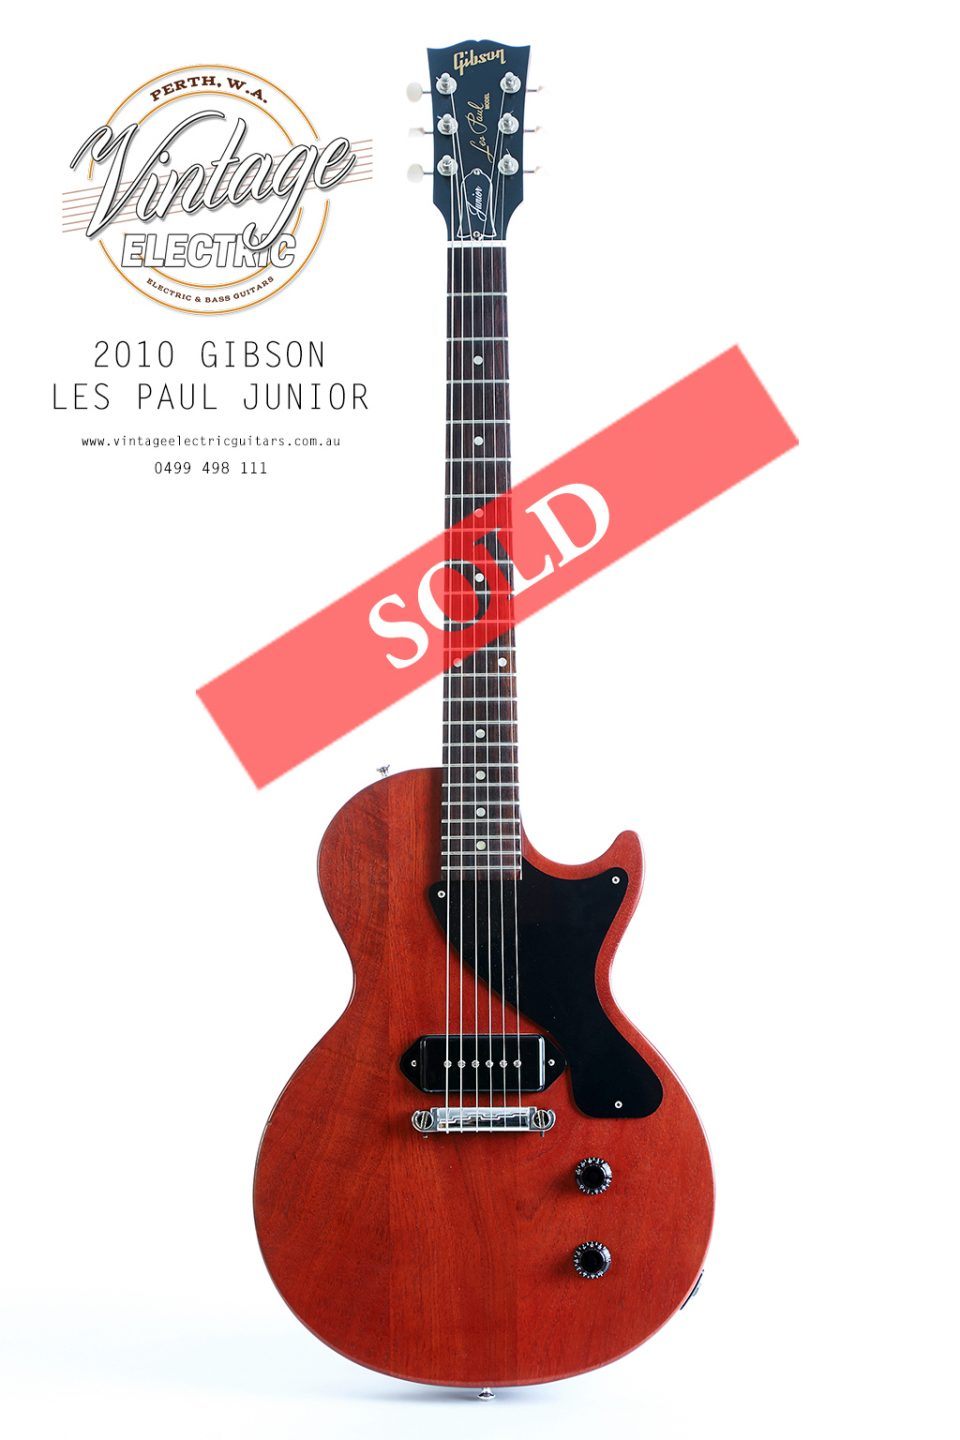 2010 Gibson Les Paul Jr